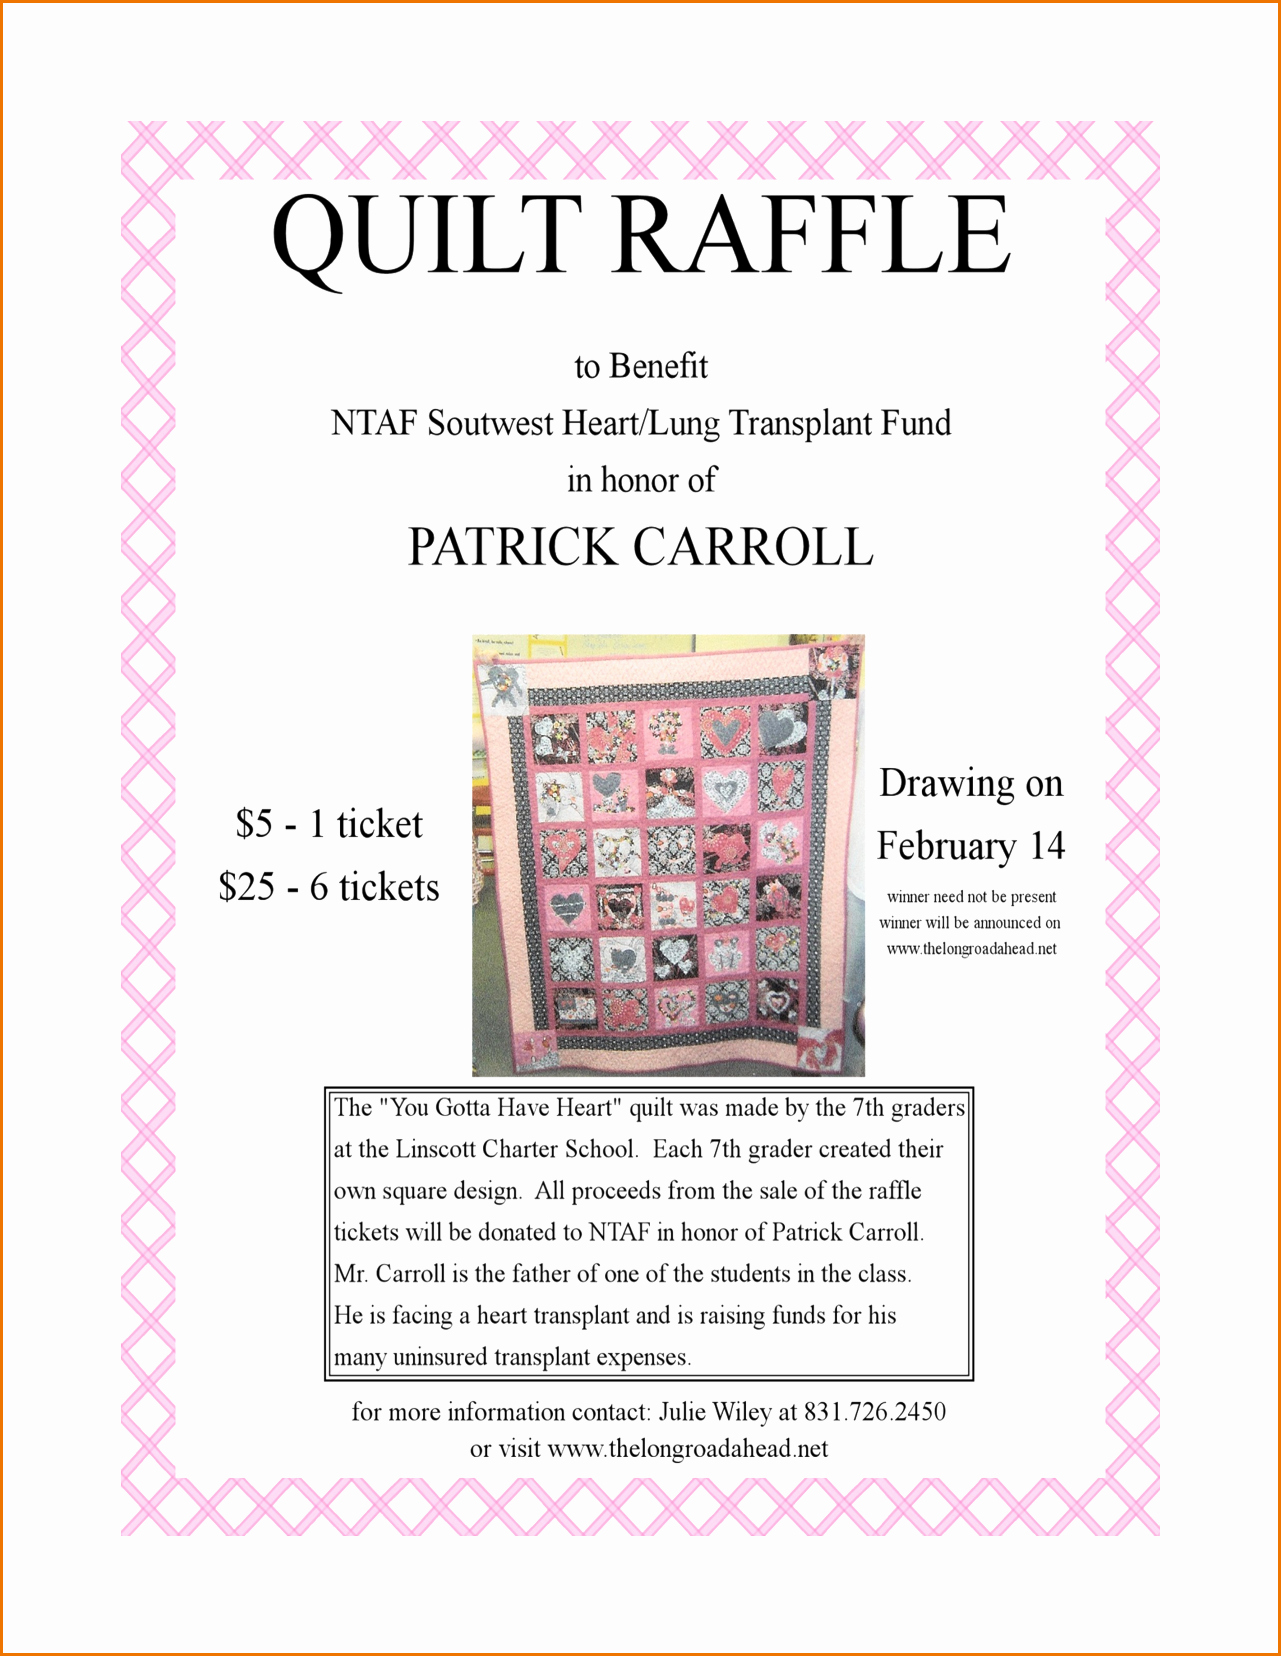 Raffle Ticket Samples for Fundraisers Awesome Sample Raffle Tickets Fundraiser Portablegasgrillweber